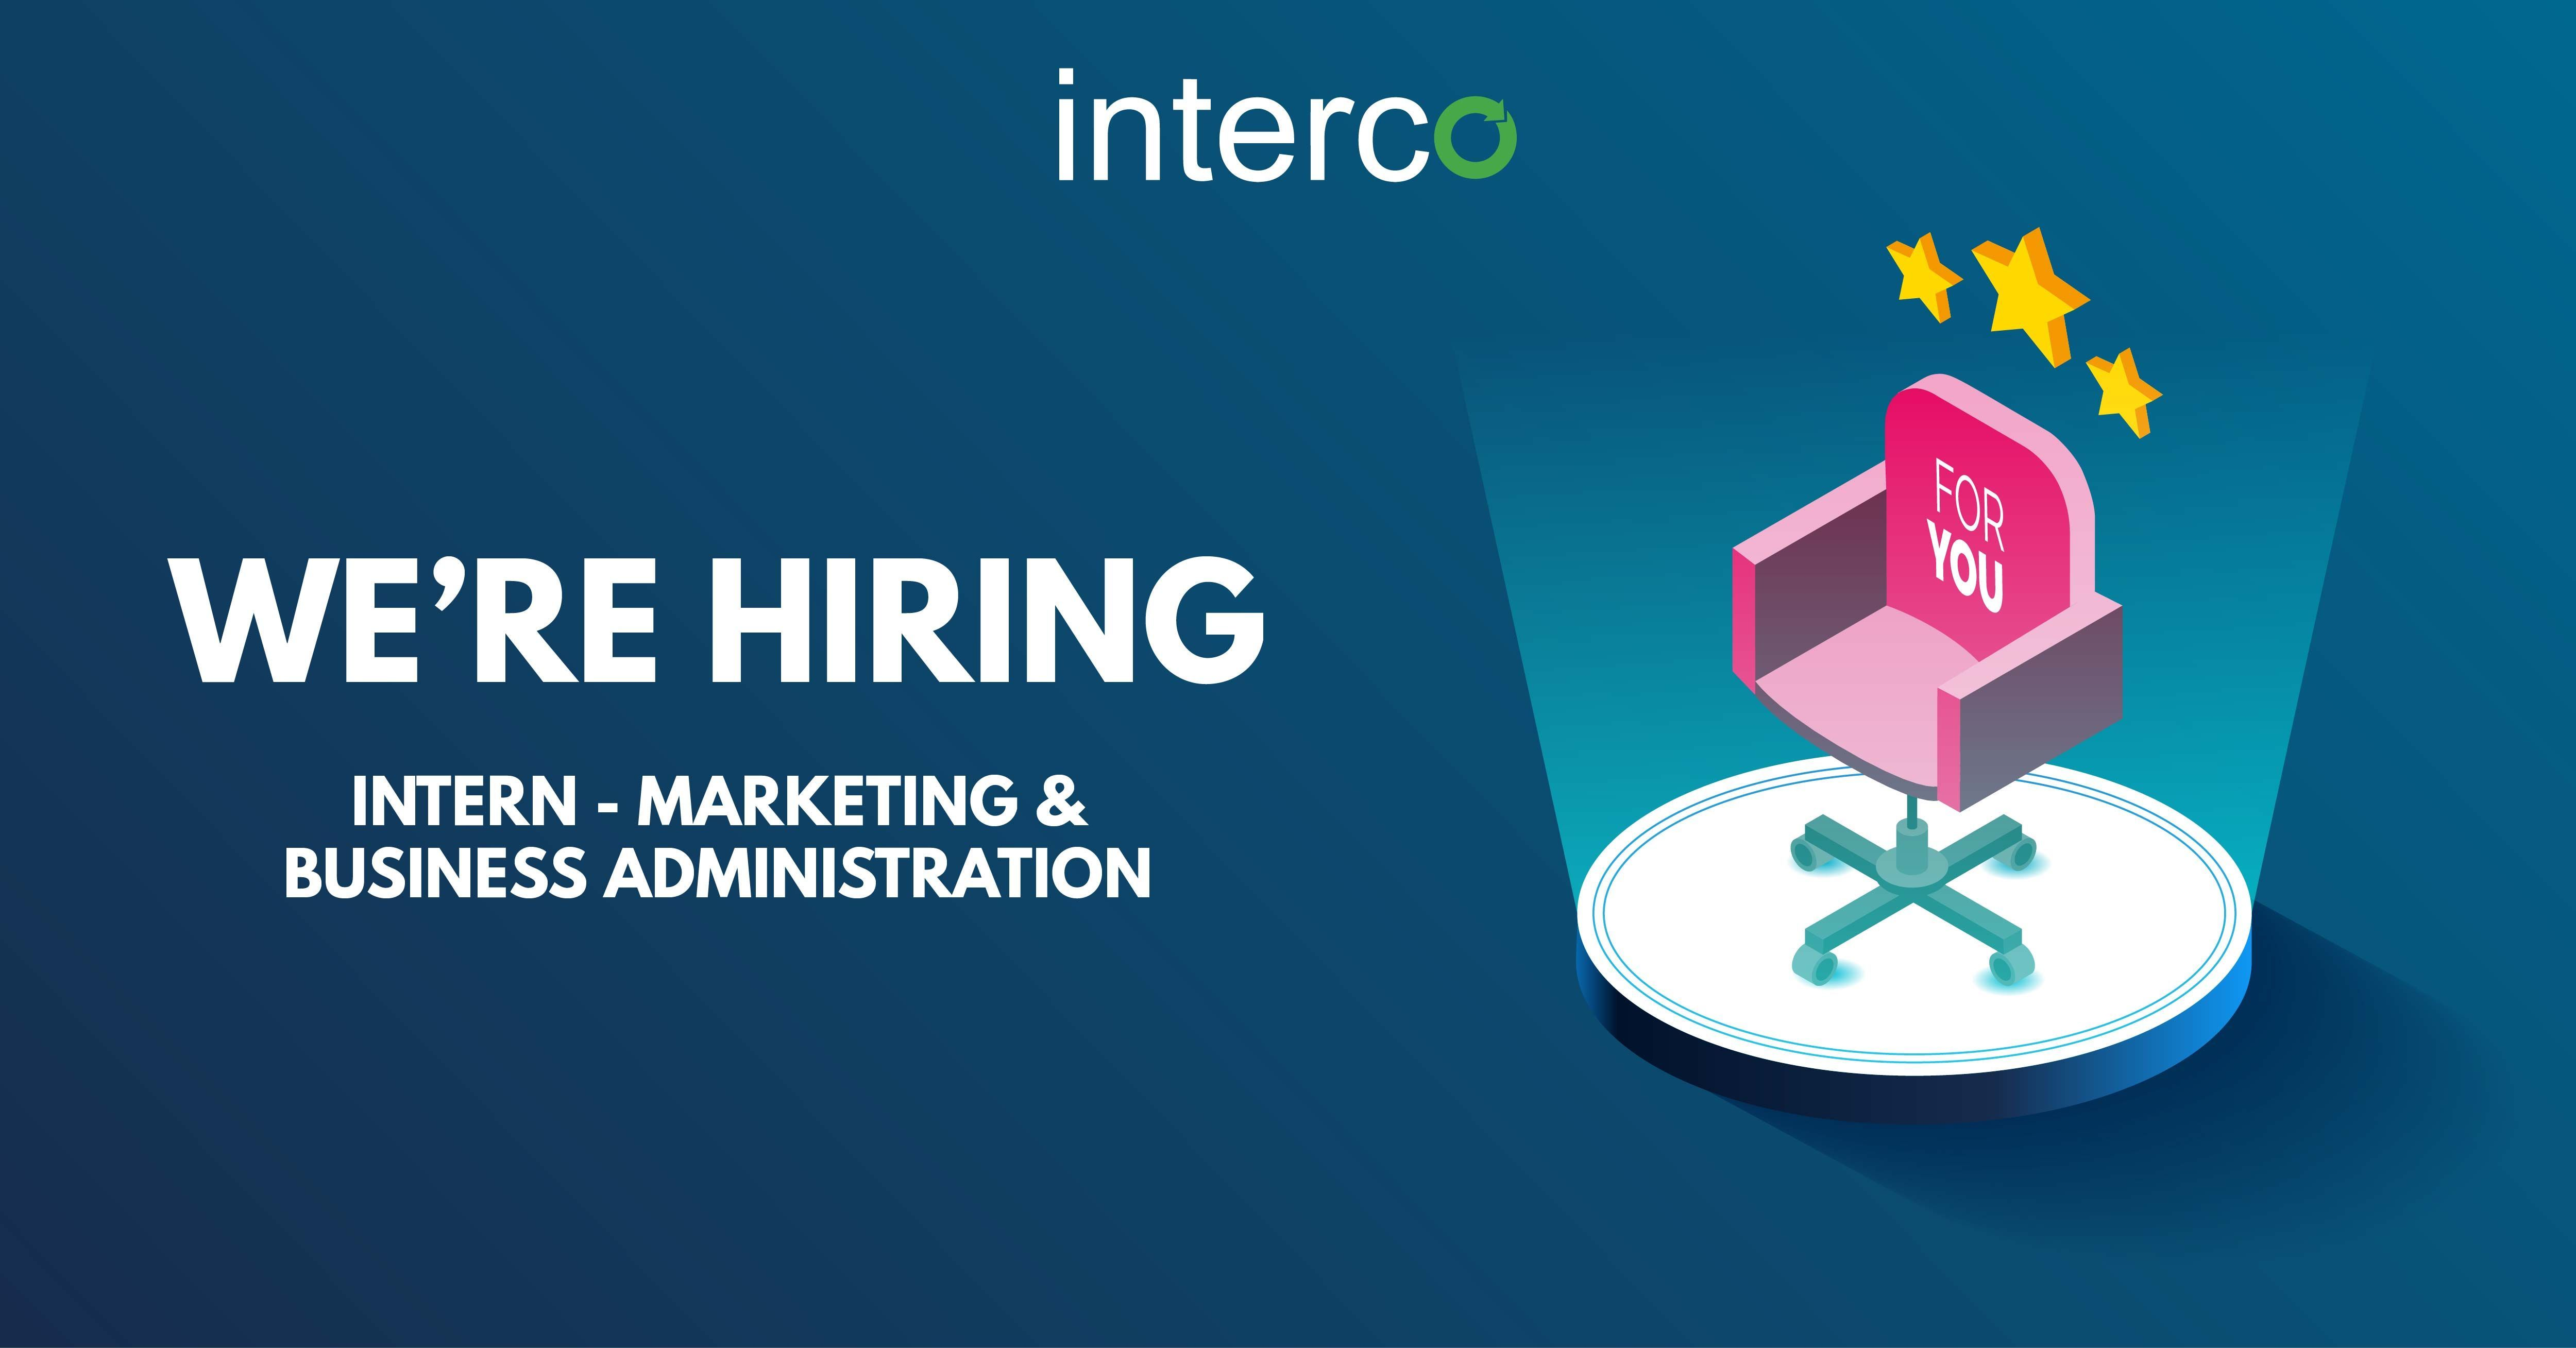 Interco is nowhiring for spring summer